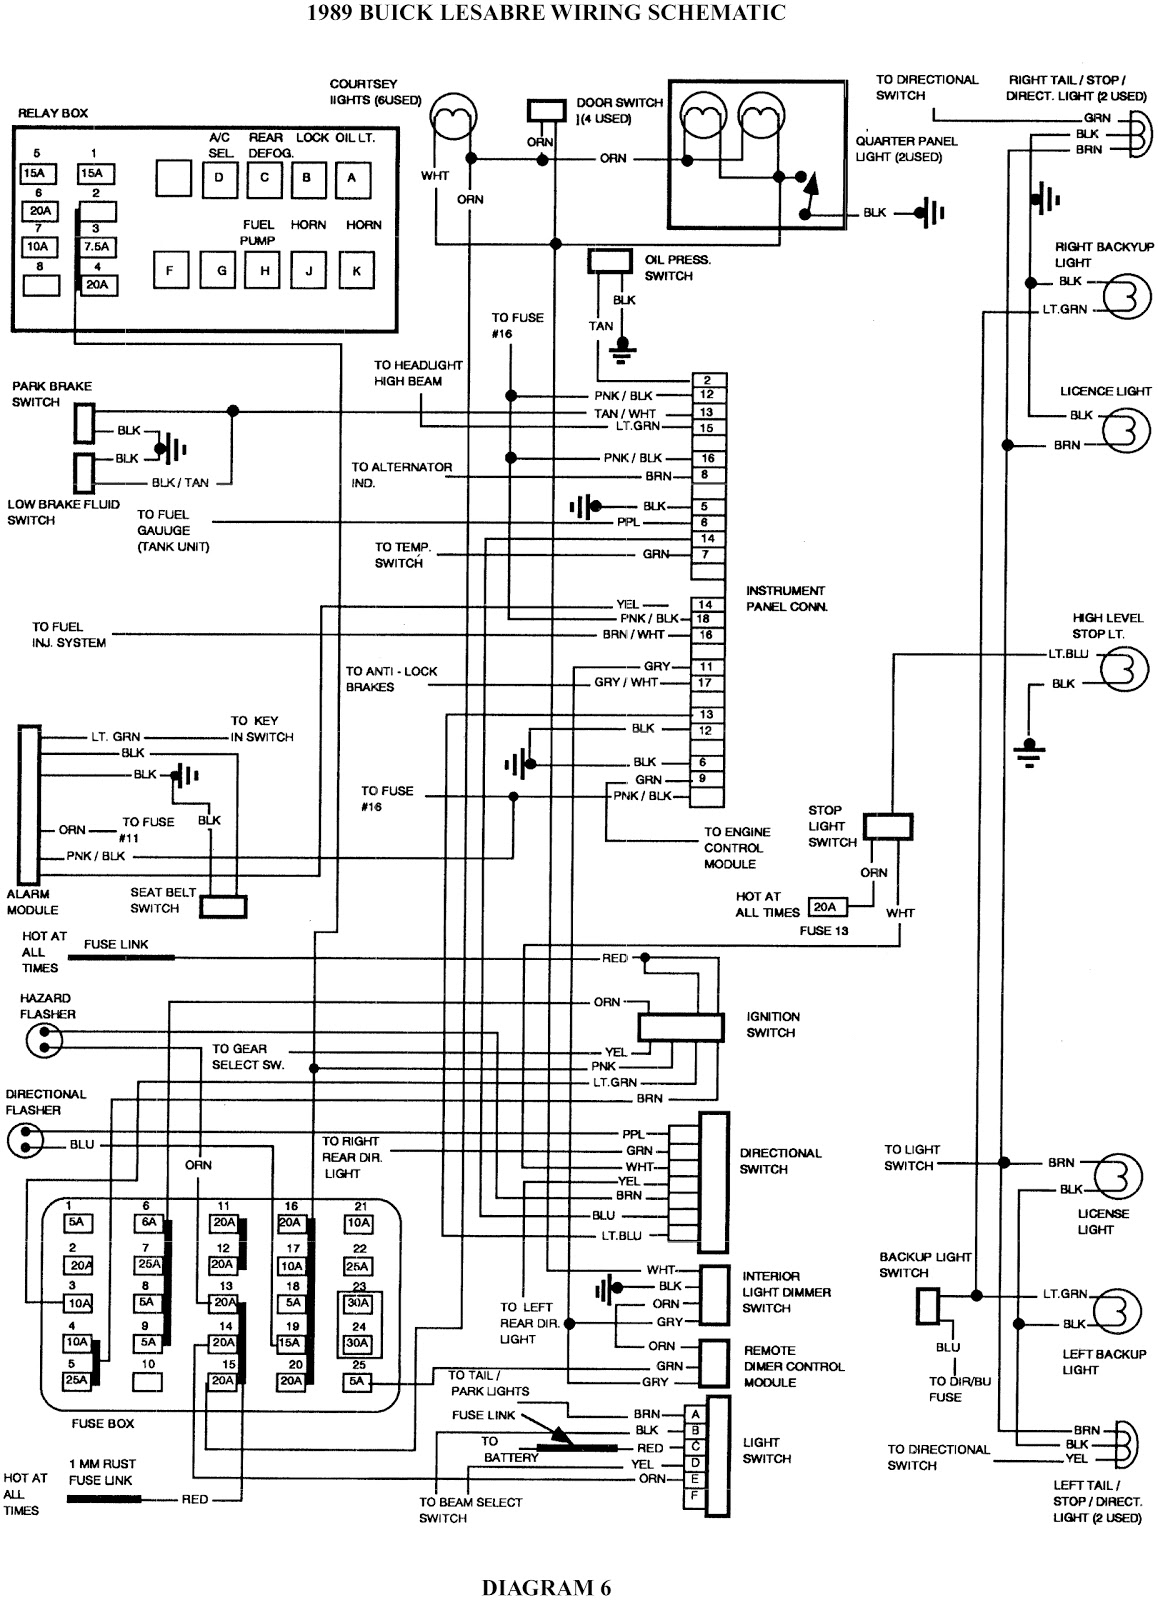 2002 Buick Lesabre Wiring Schematic together with 604579 Help Light Kill Switch likewise Buick Century Pcm Diagram also 1997 Buick Century Fuse Box additionally 1986 Buick Century Wiring Diagram. on 1994 buick century custom wiring diagram html